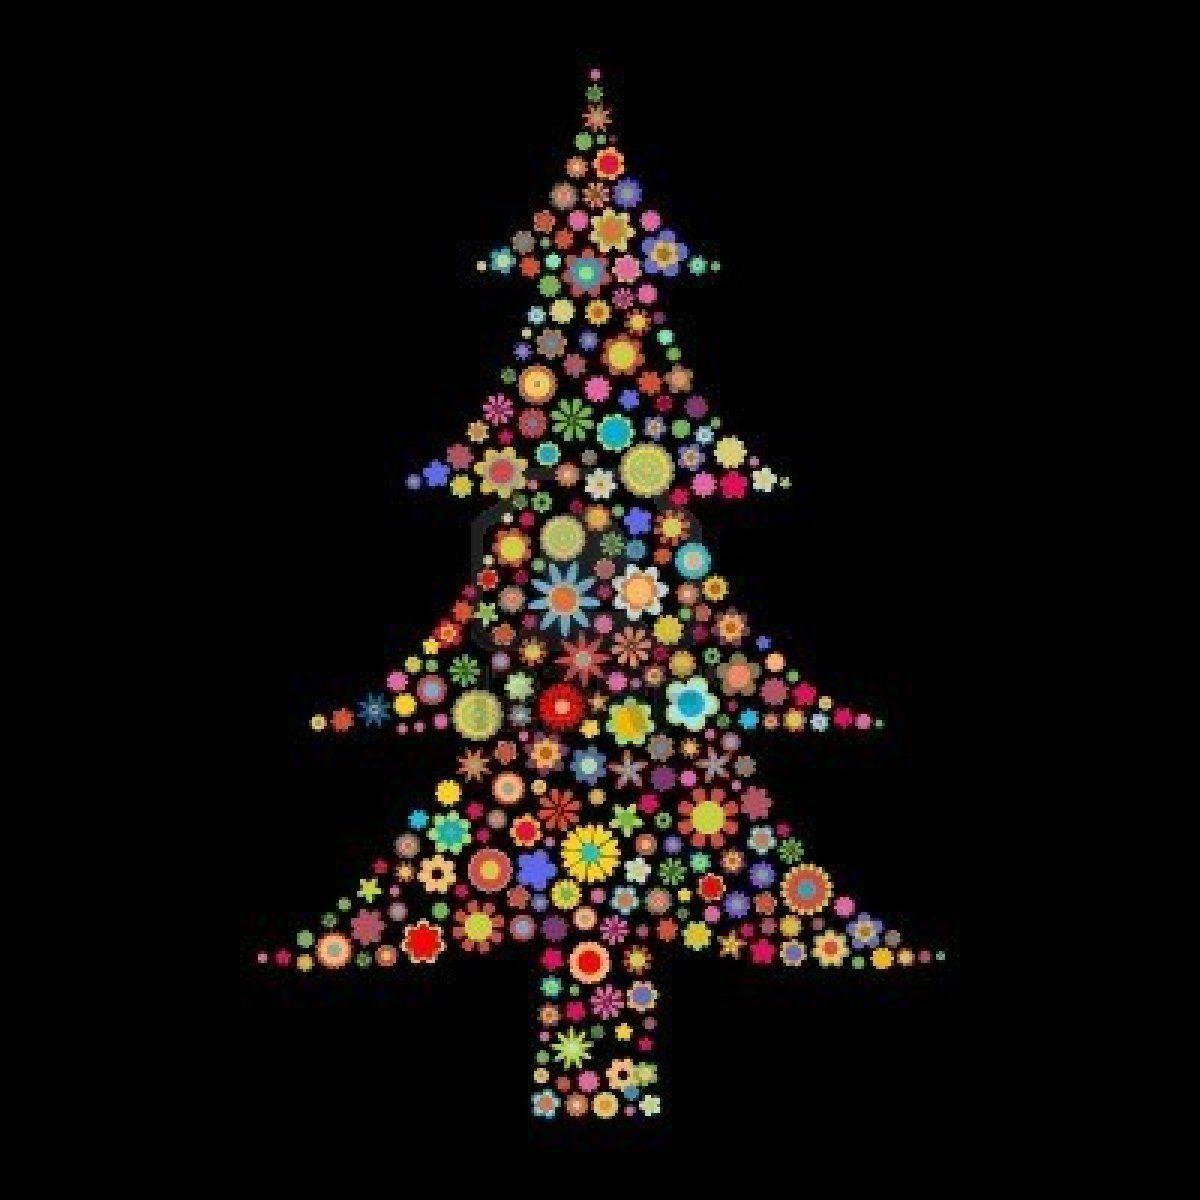 Vector illustration Christmas tree shape made up a lot of multicolored small flowers on the black background